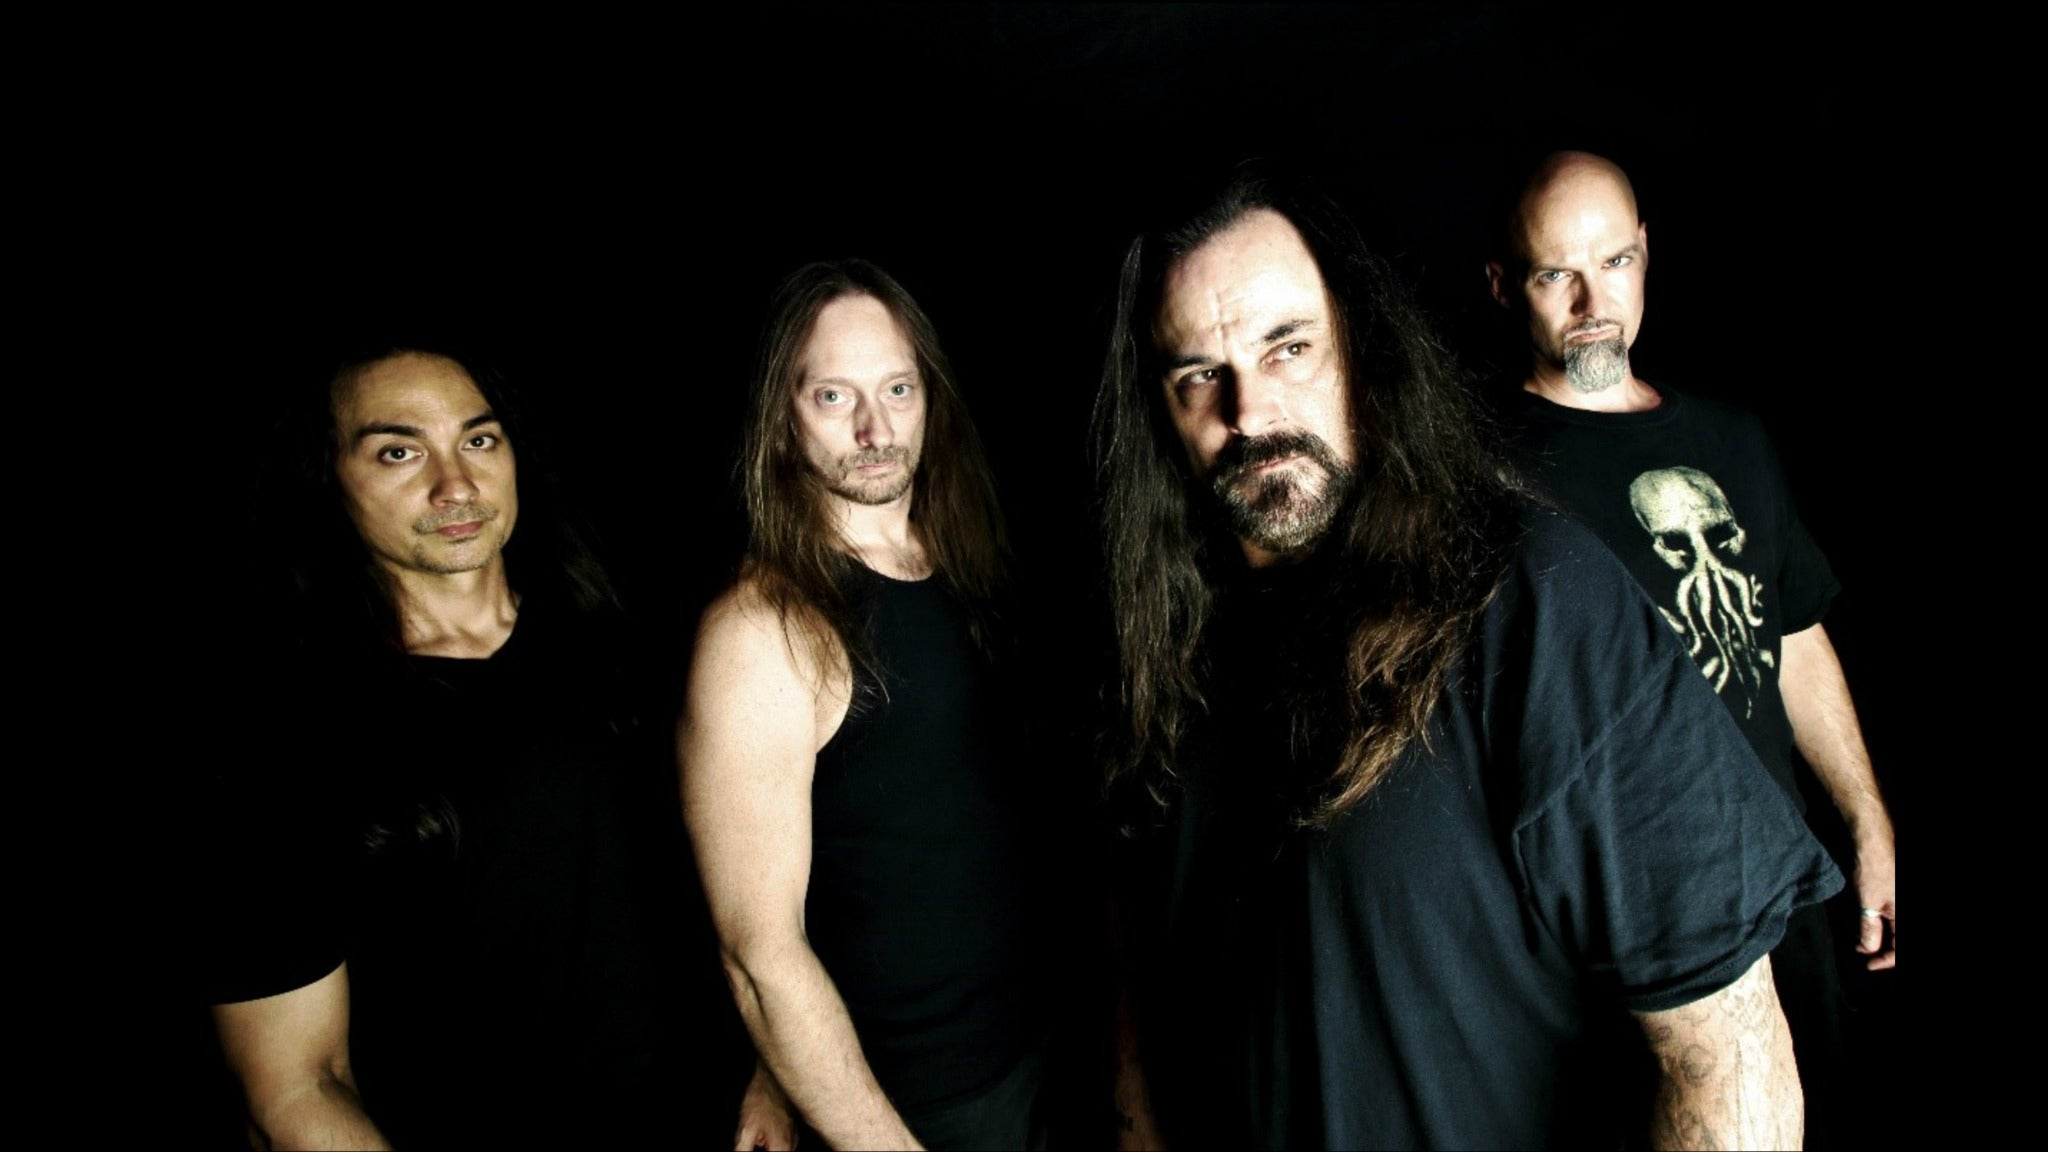 Image used with permission from Ticketmaster | Deicide + Krisiun + Crypta tickets